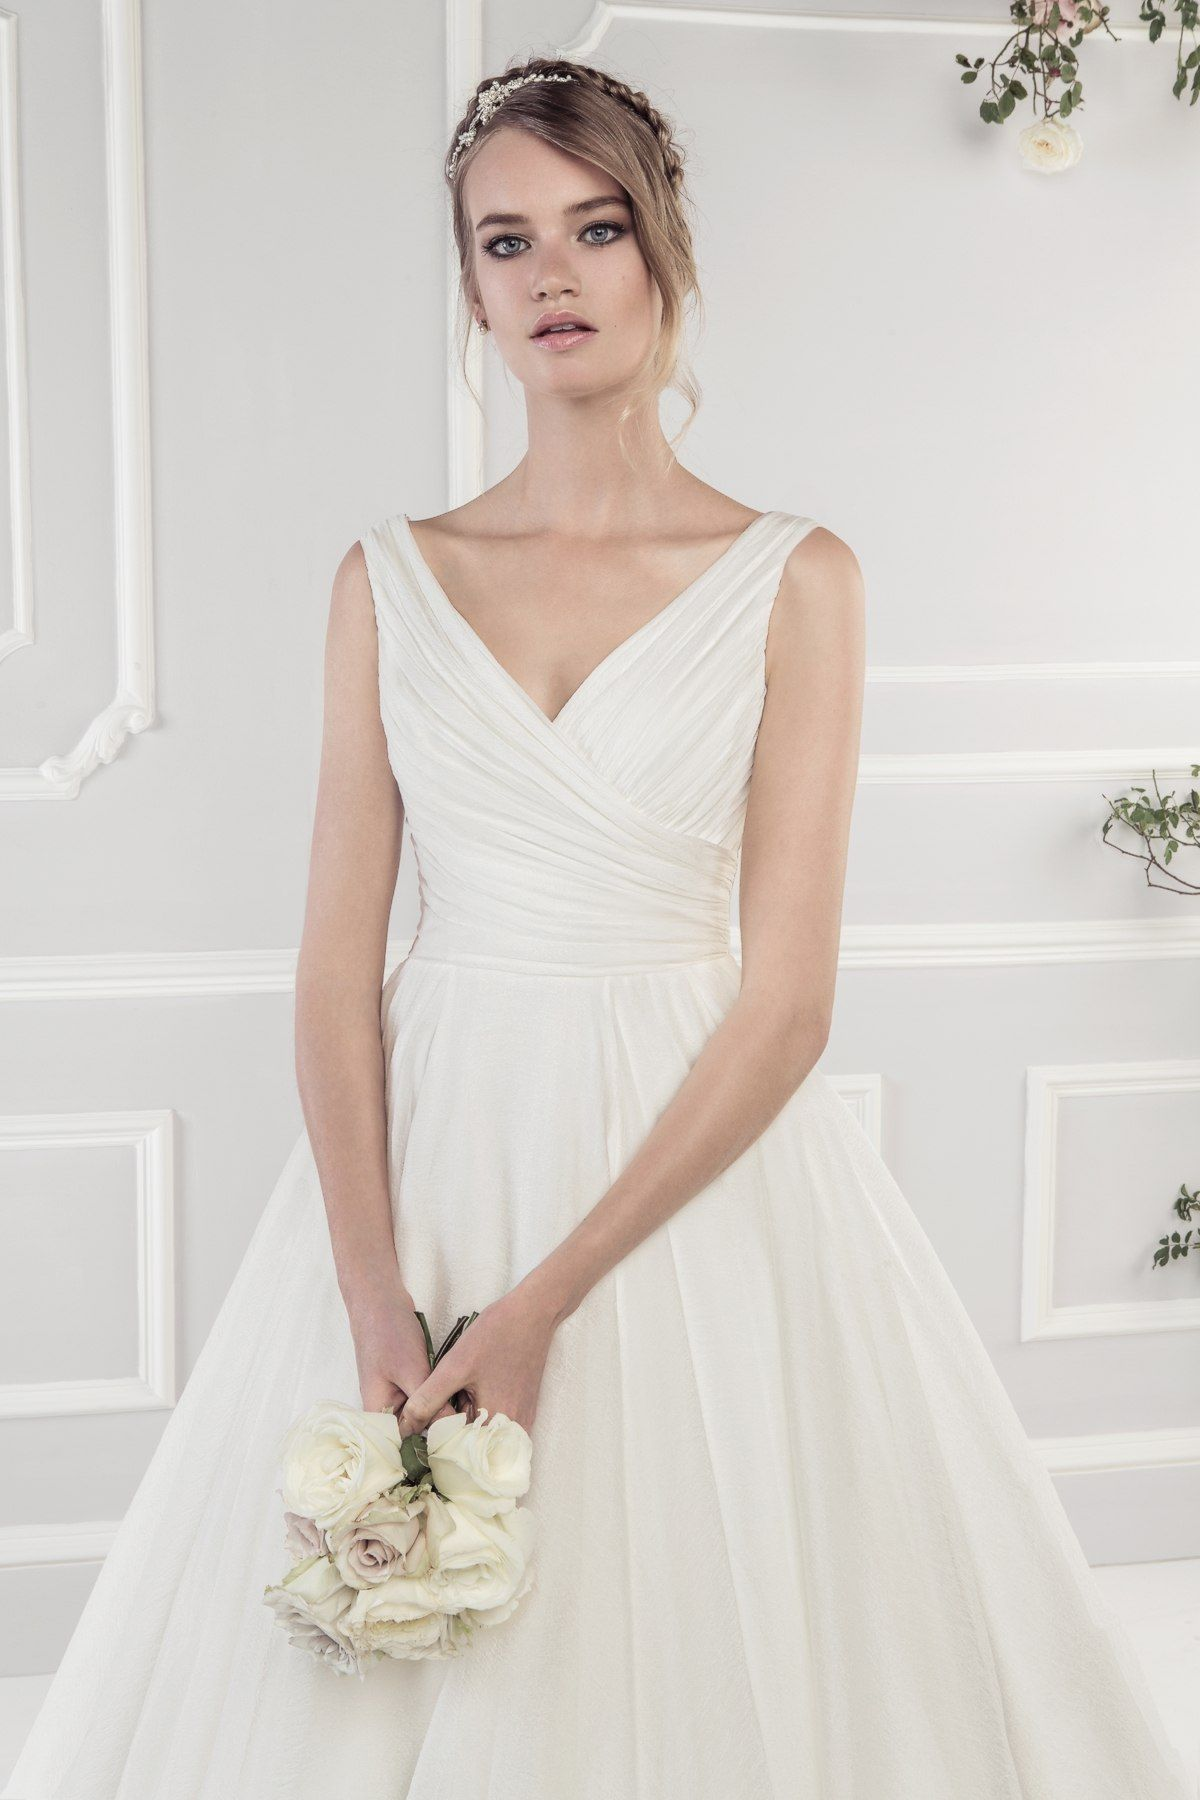 Simple wedding dresses for eloping  Pin by Malin Frohm on wedding  Pinterest  Ellis bridal